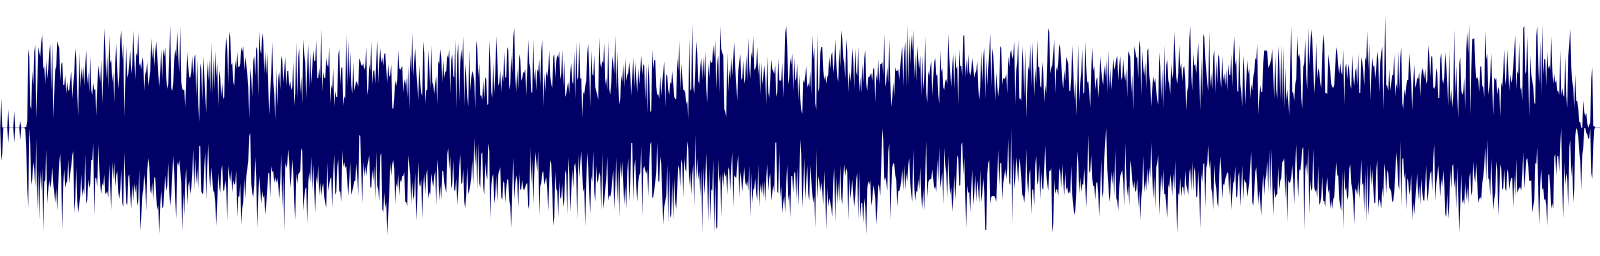 waveform of track #130543